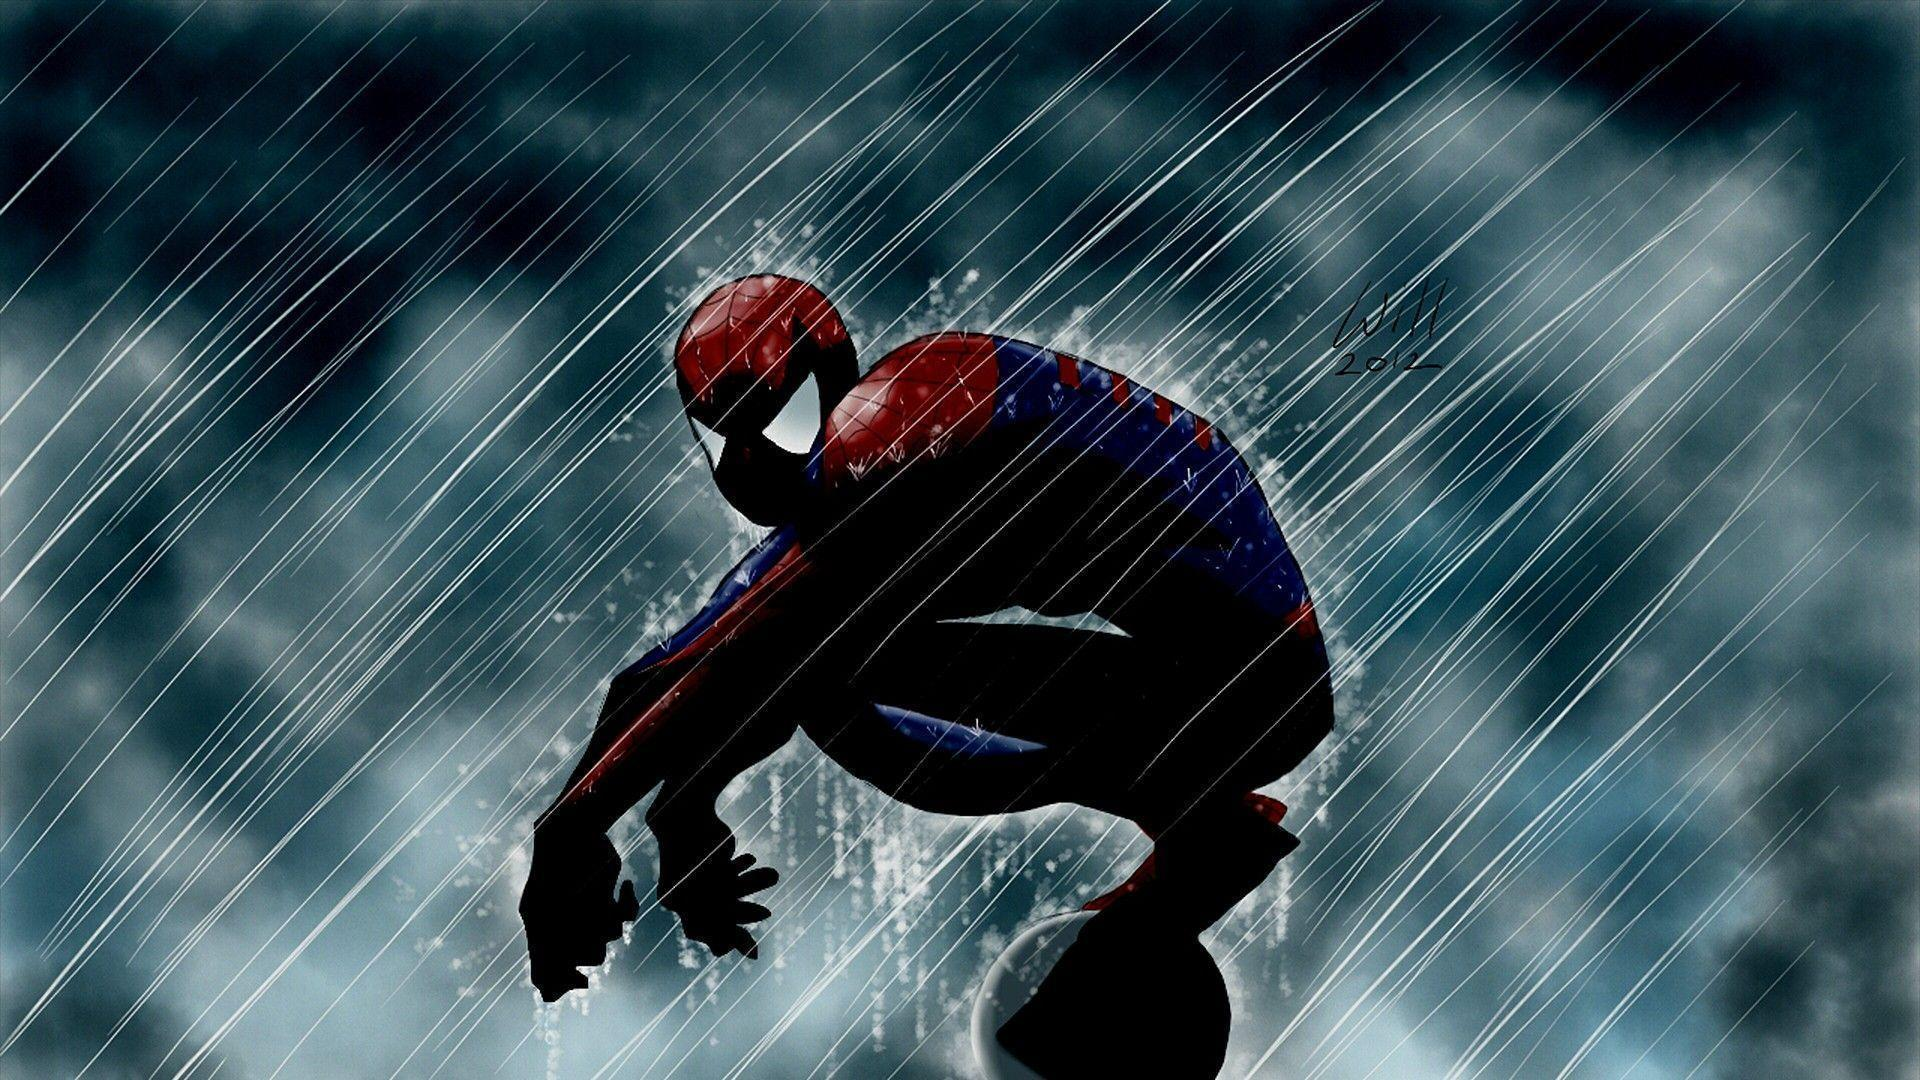 Spiderman in Comic Exclusive HD Wallpapers #